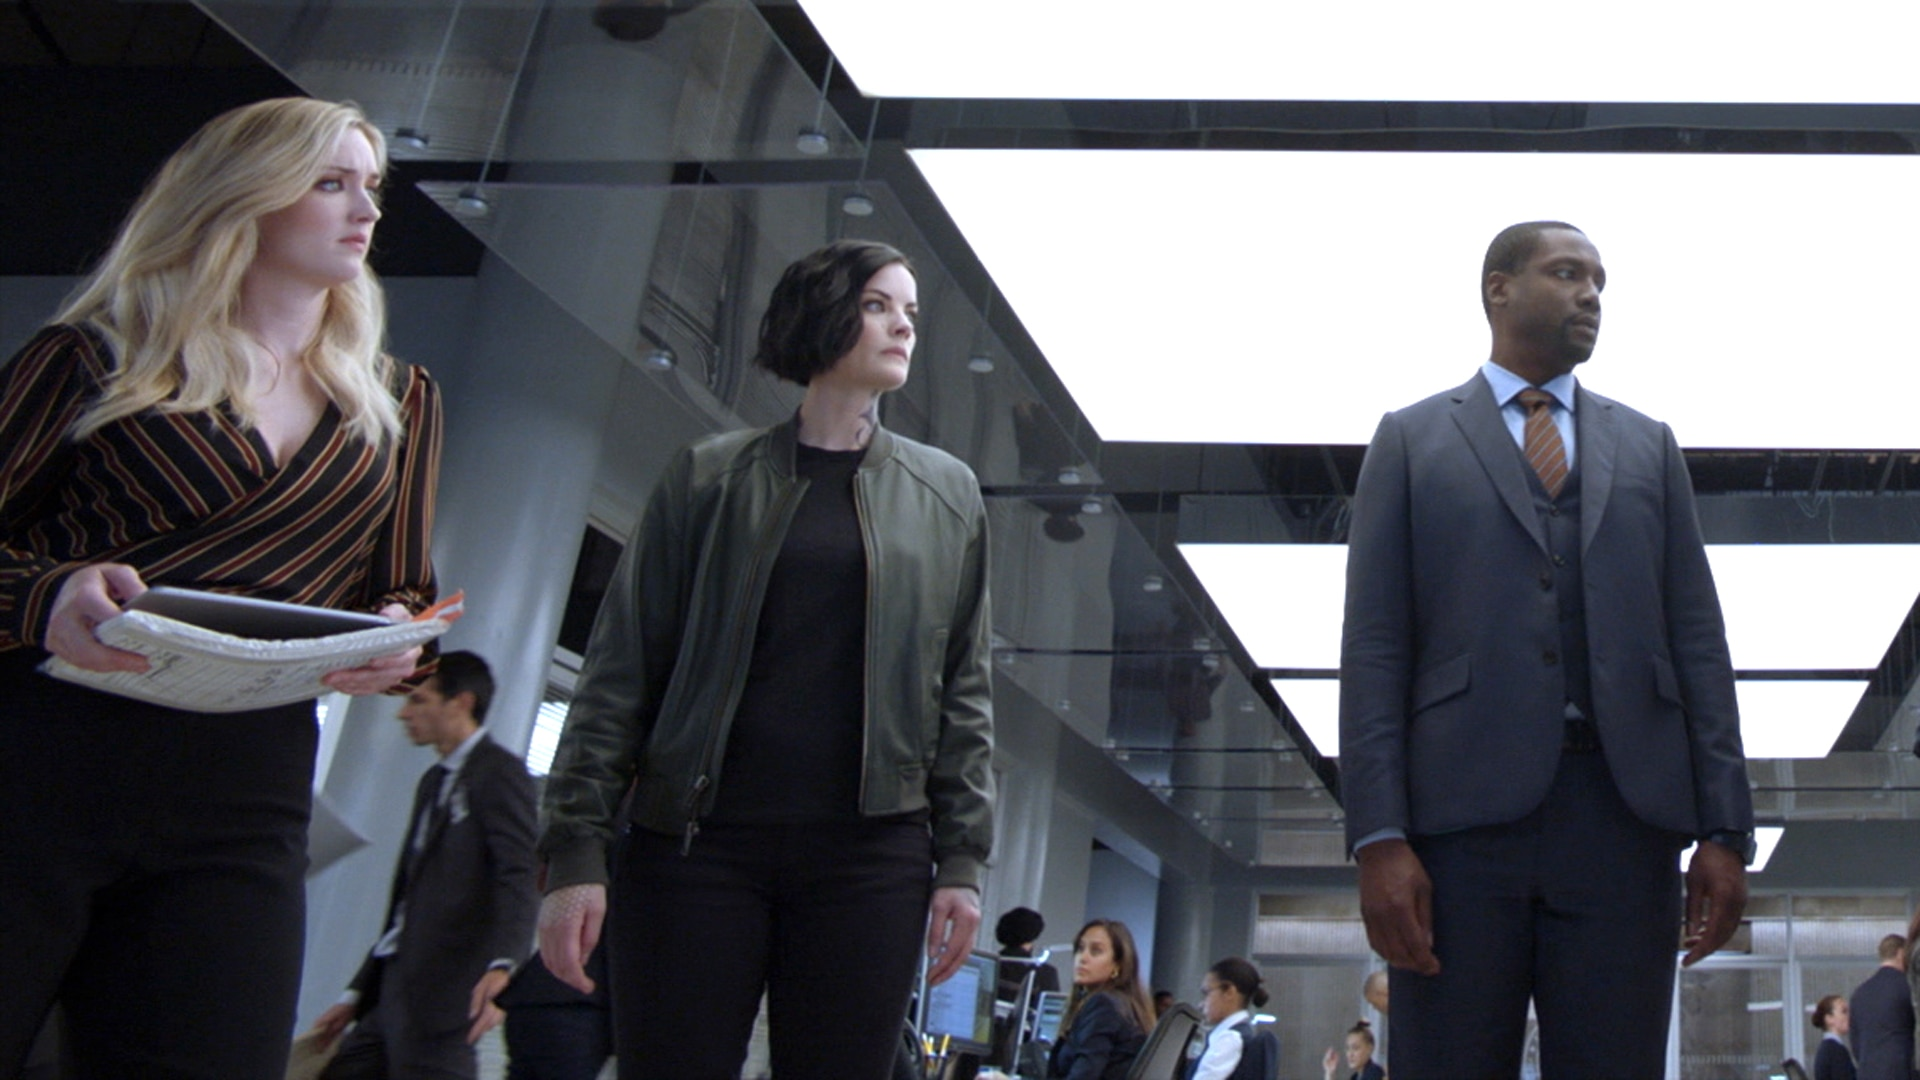 Watch Blindspot Episode: Careless Whisper - NBC.com